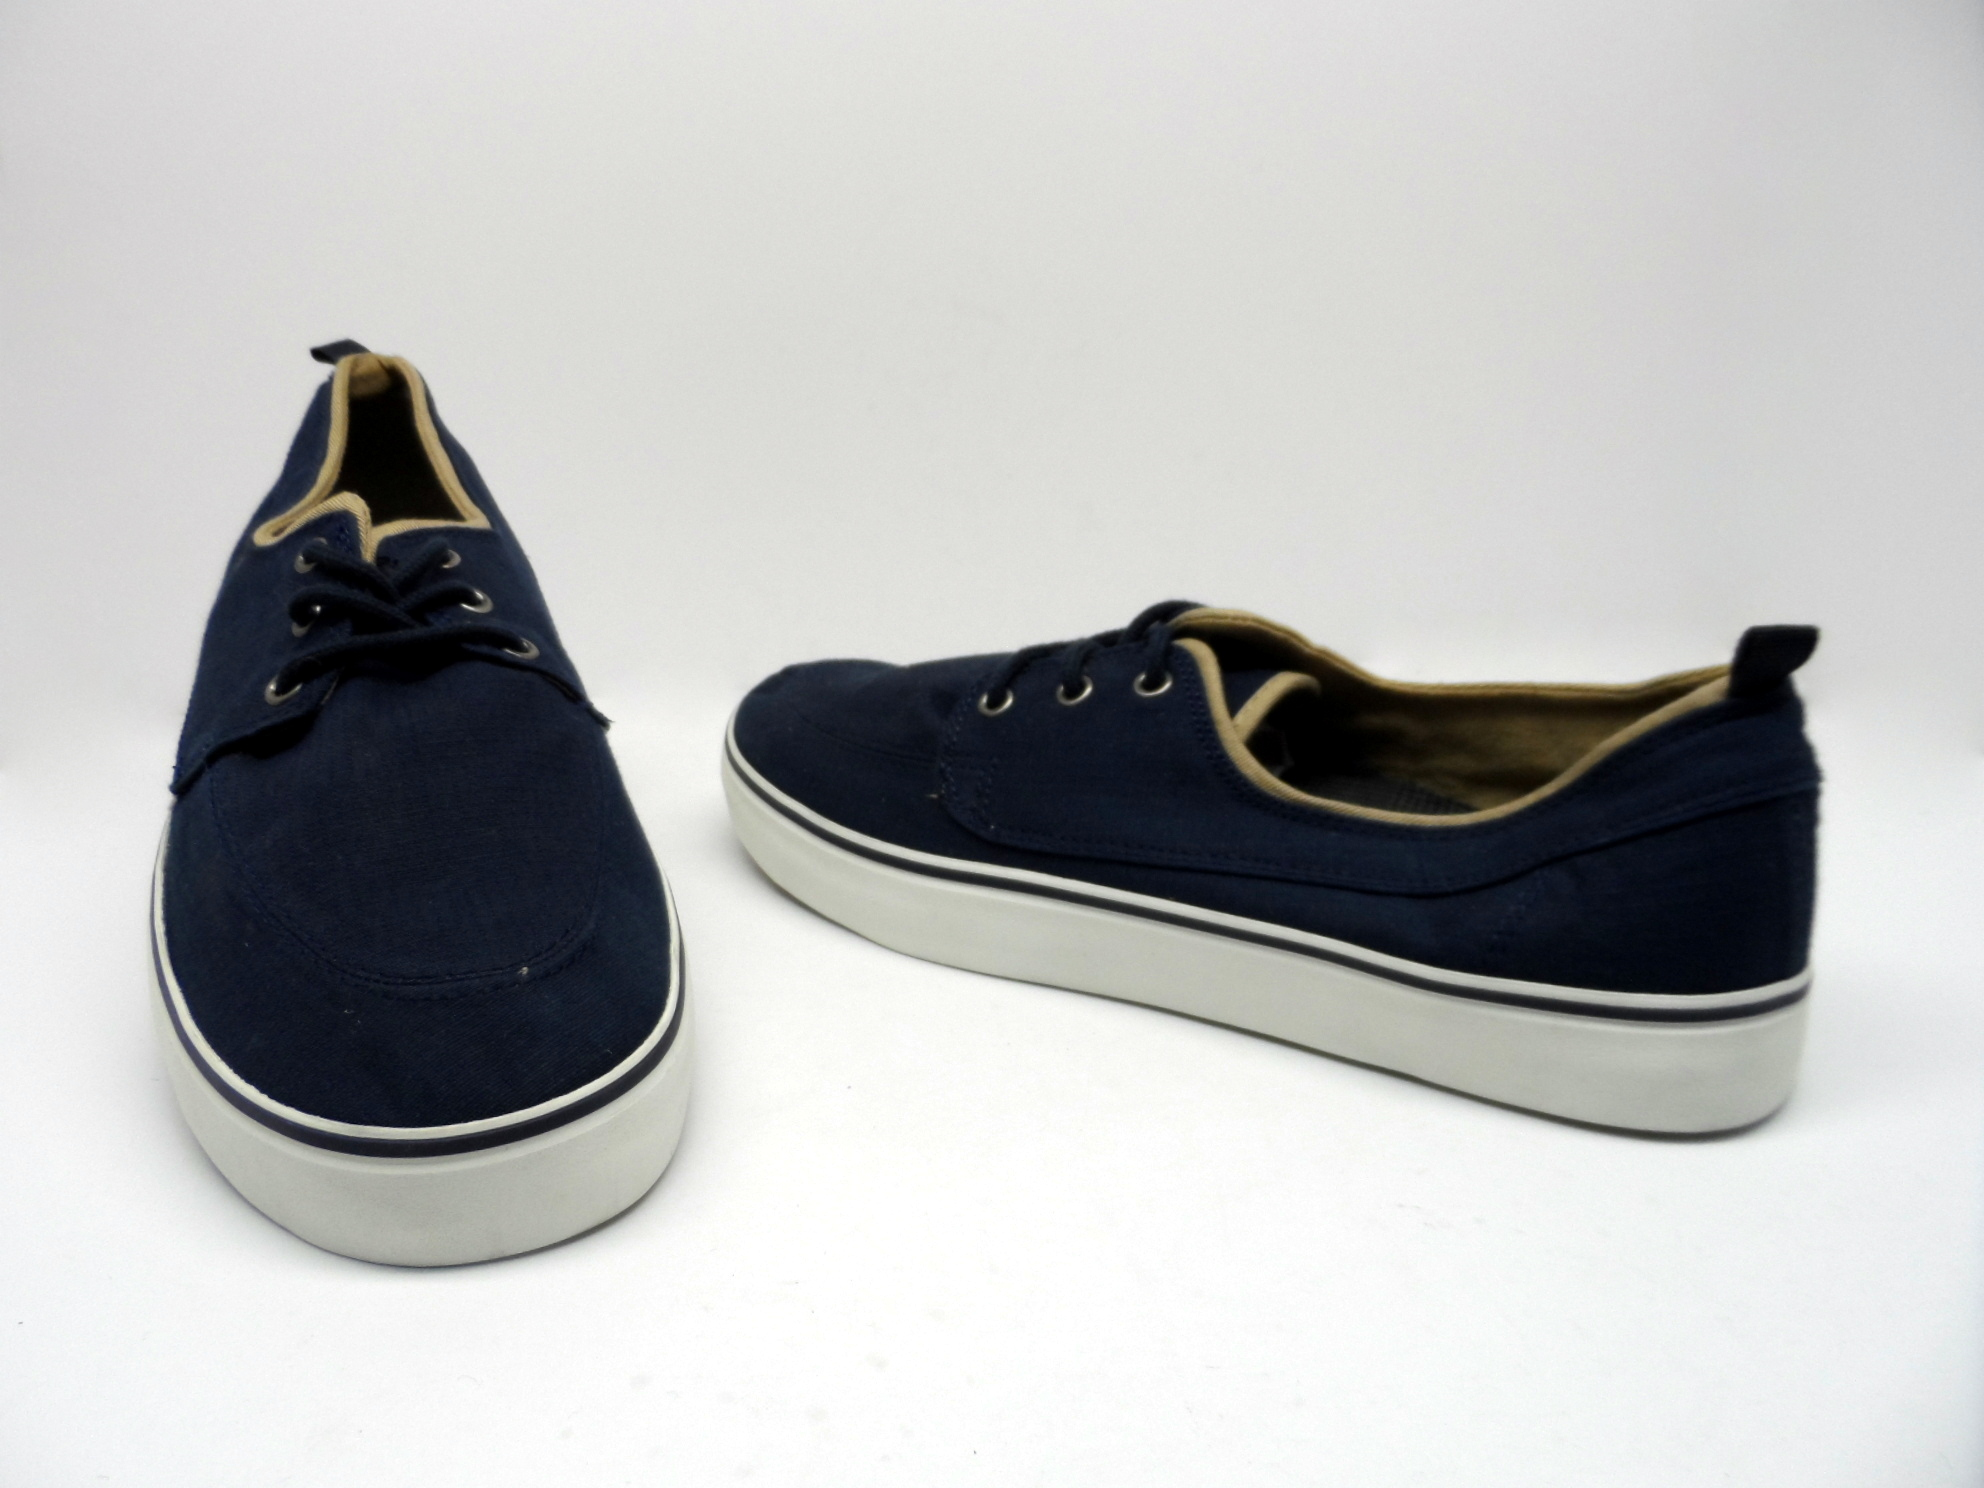 gap s textile casual shoes navy white size 9 nwob ebay